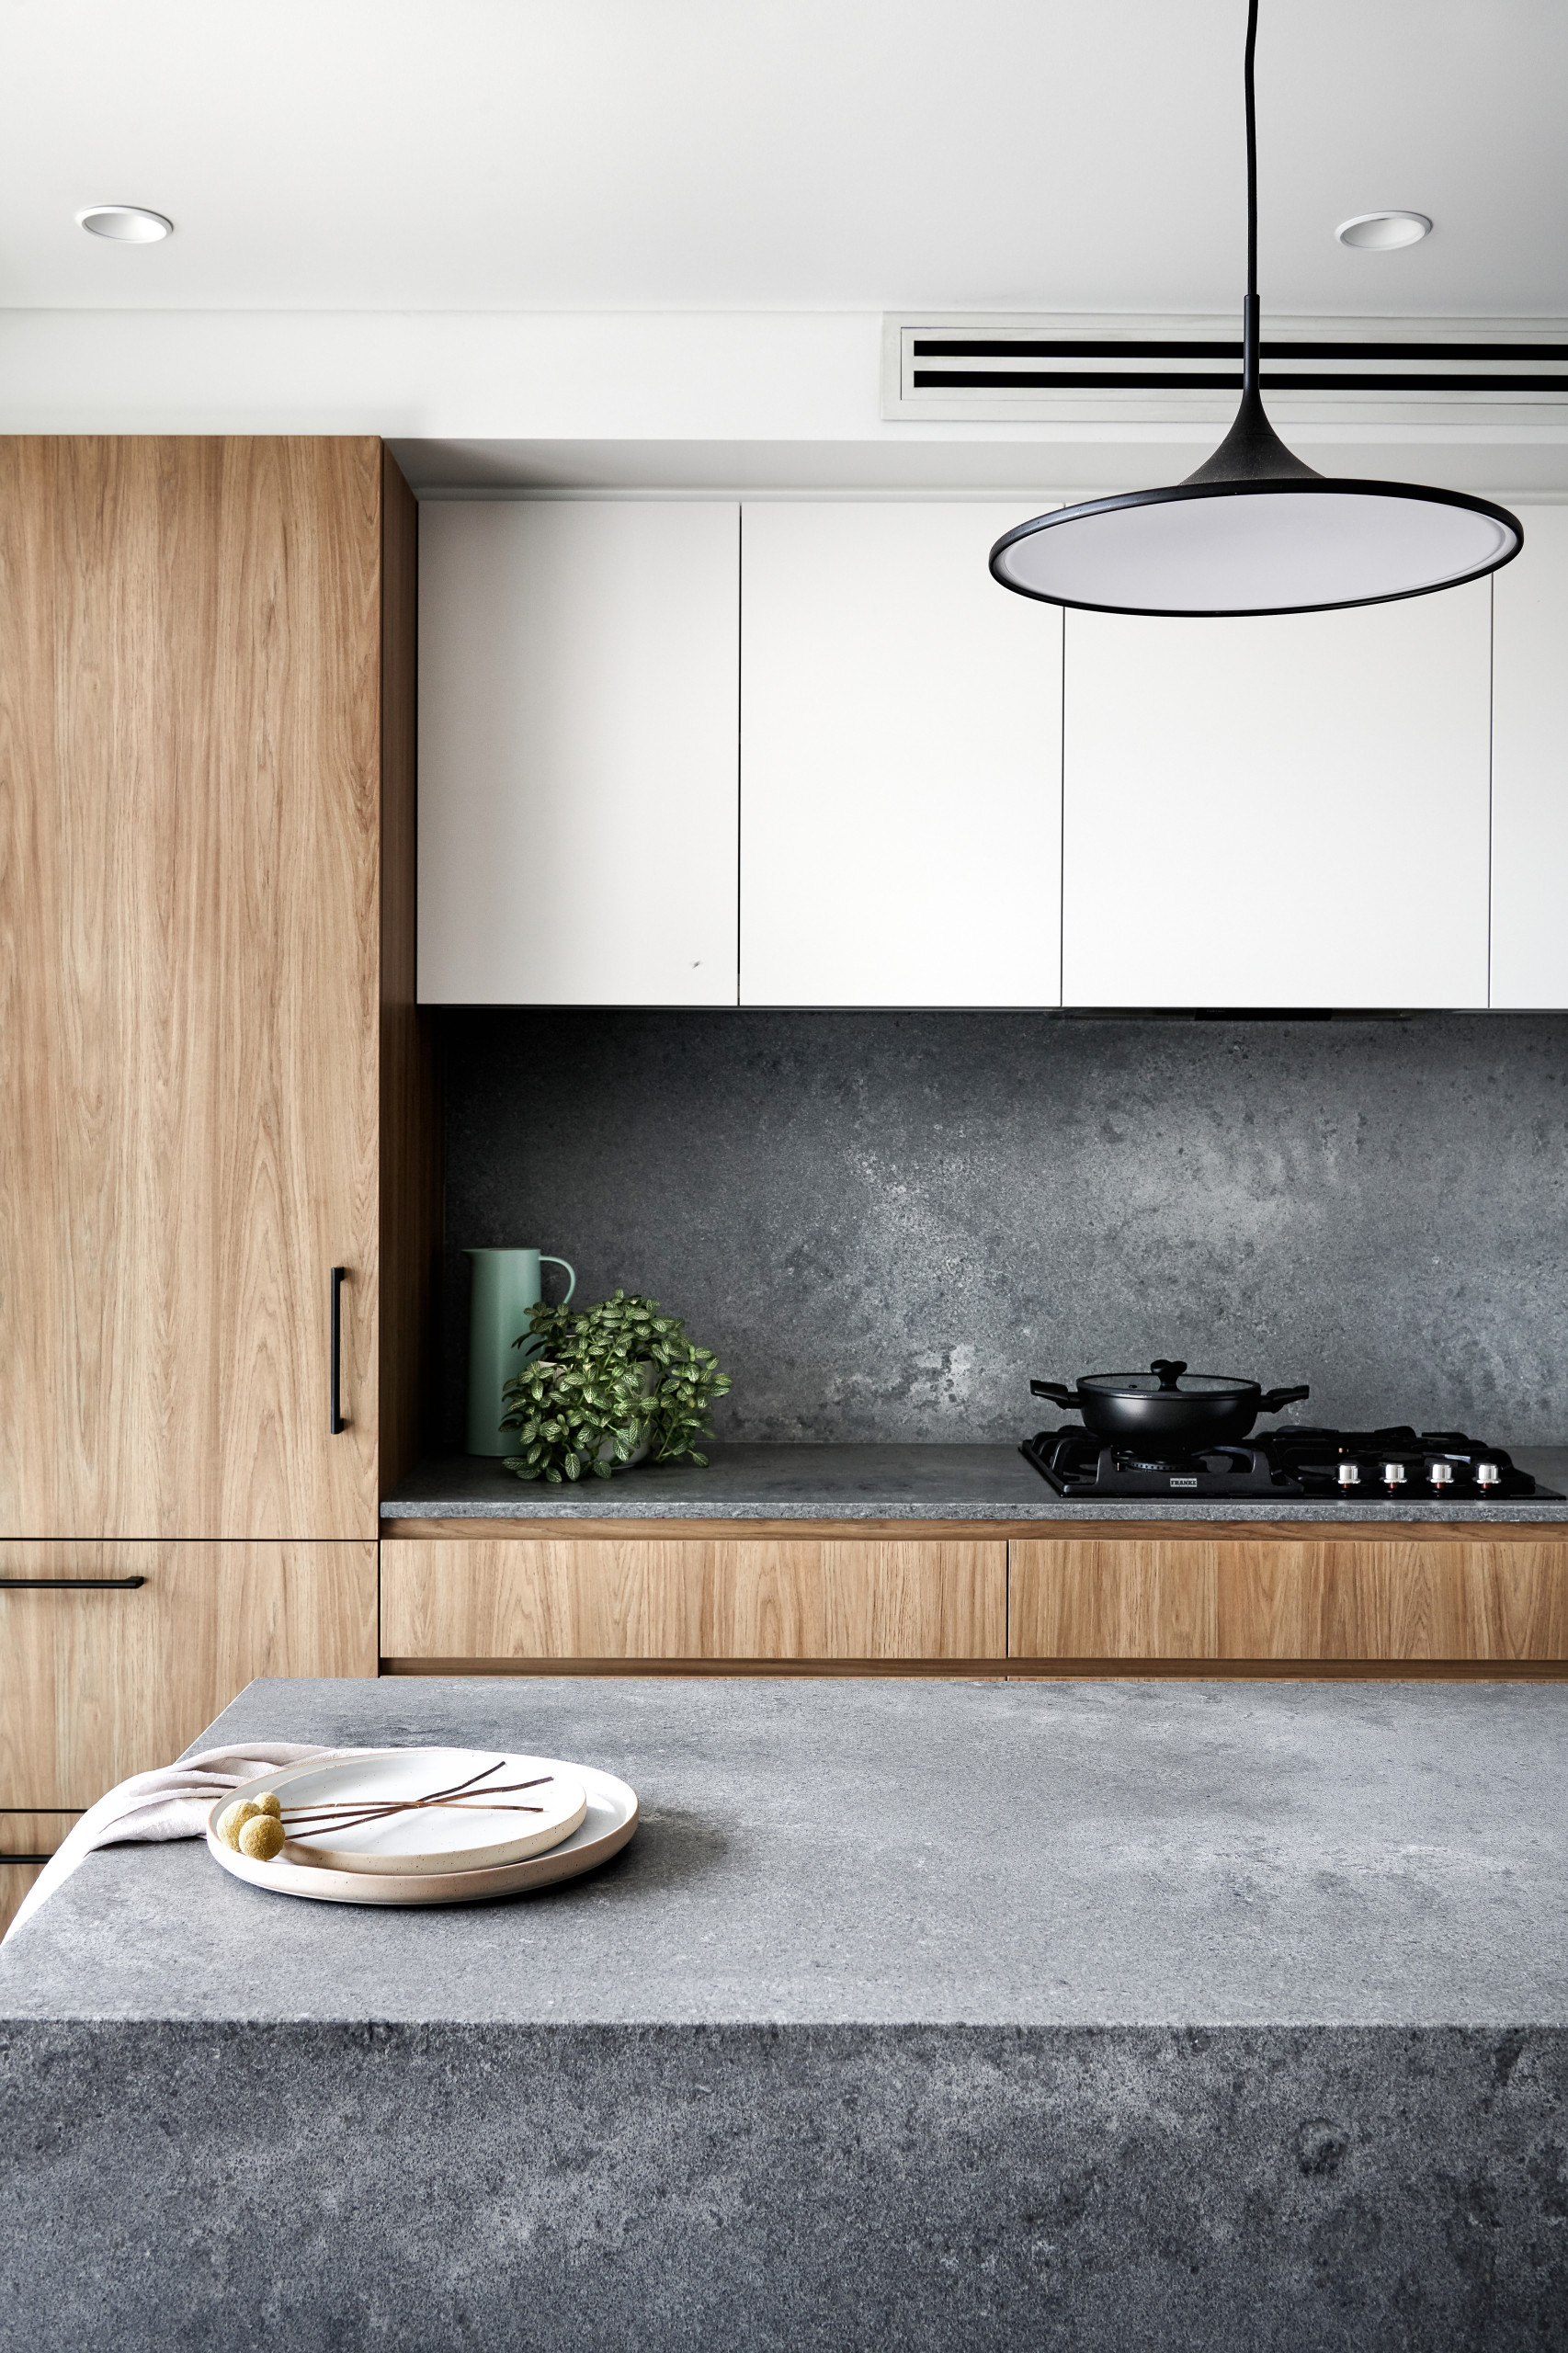 75 Beautiful Kitchen With Glass Countertops Pictures Ideas December 2020 Houzz